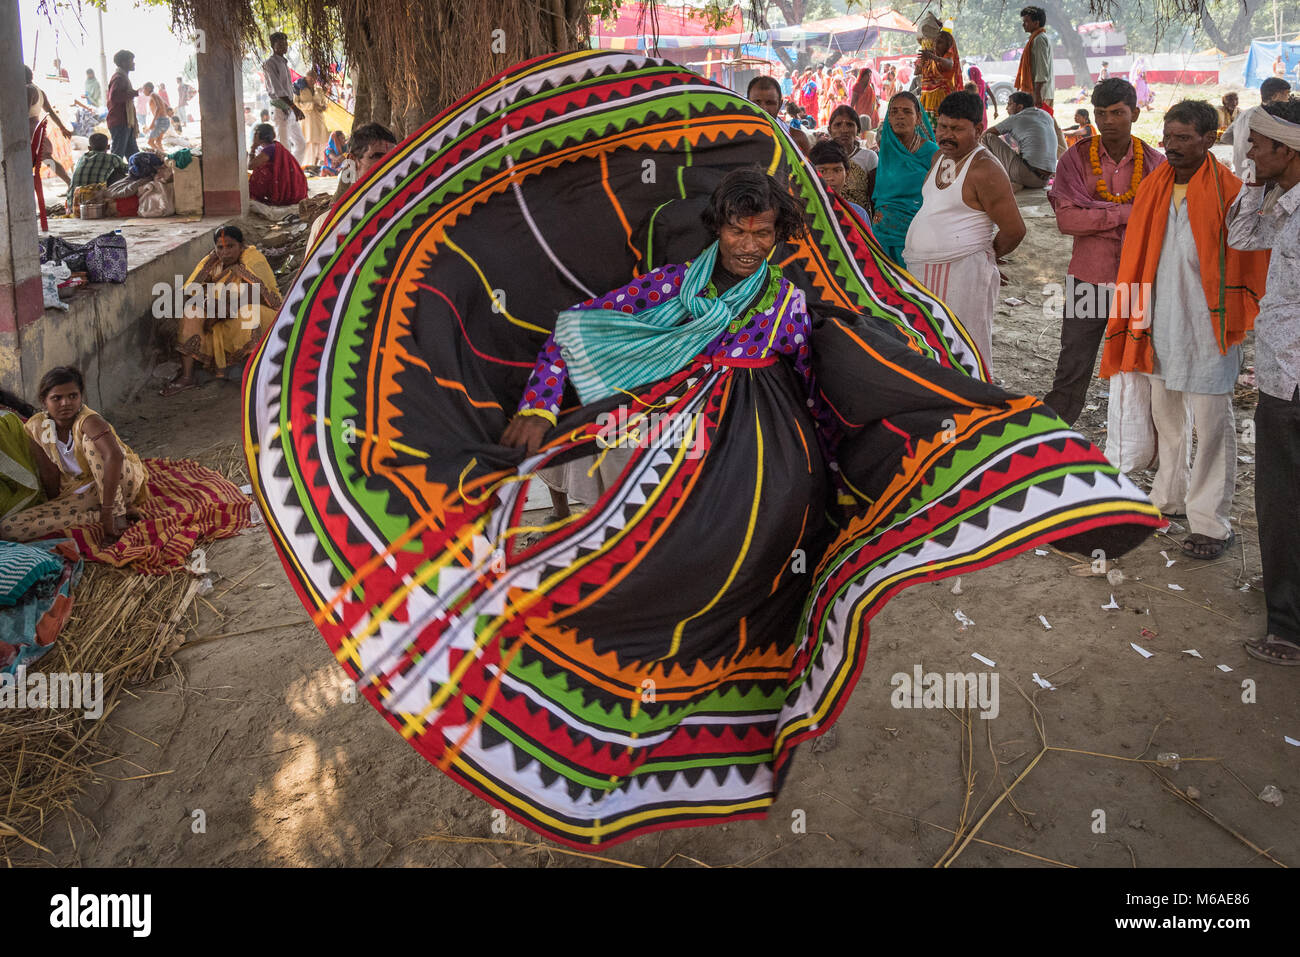 A man dancing and twirling about just before the Kartika Purnima (Deva-Diwali) festival in Sonepur, India. - Stock Image